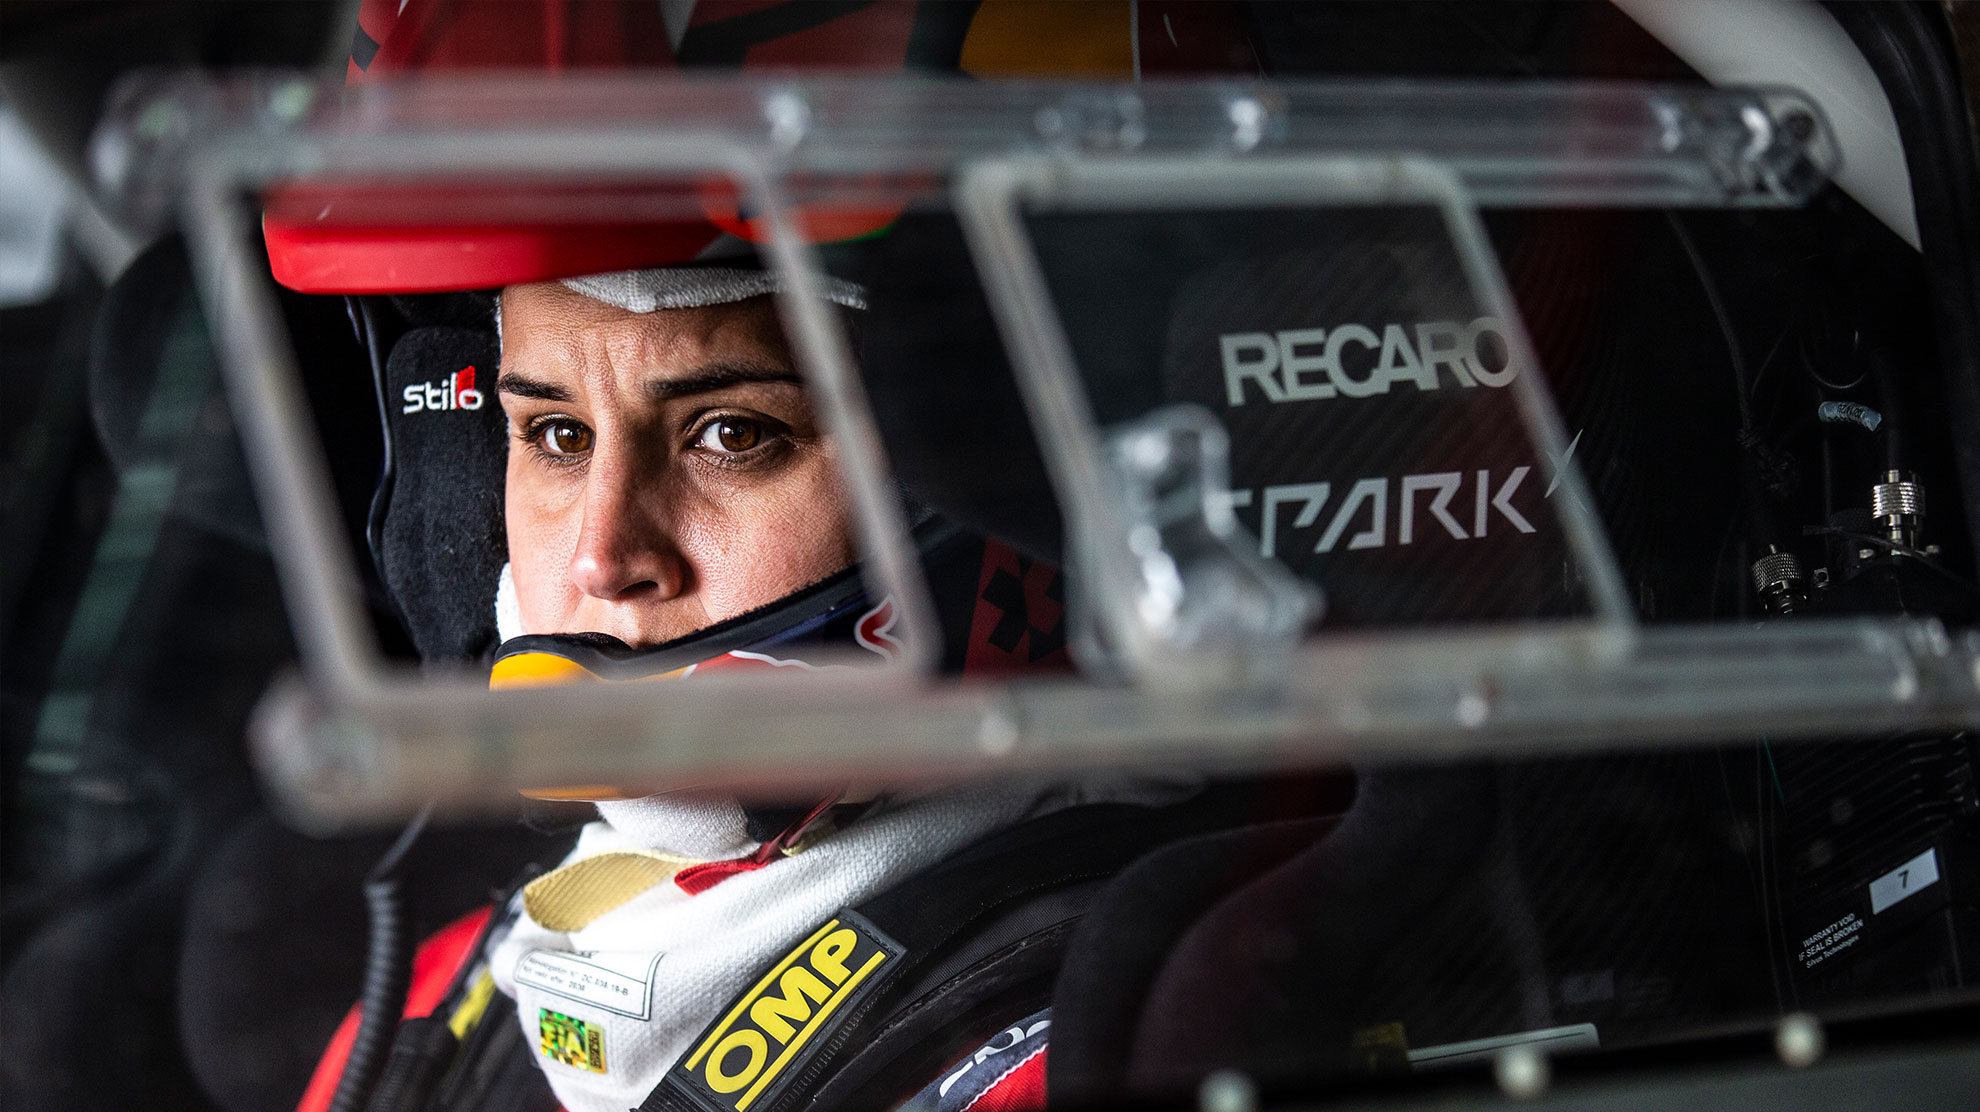 Laia Sanz – the race driver: 'We'll have to be full gas from the beginning'